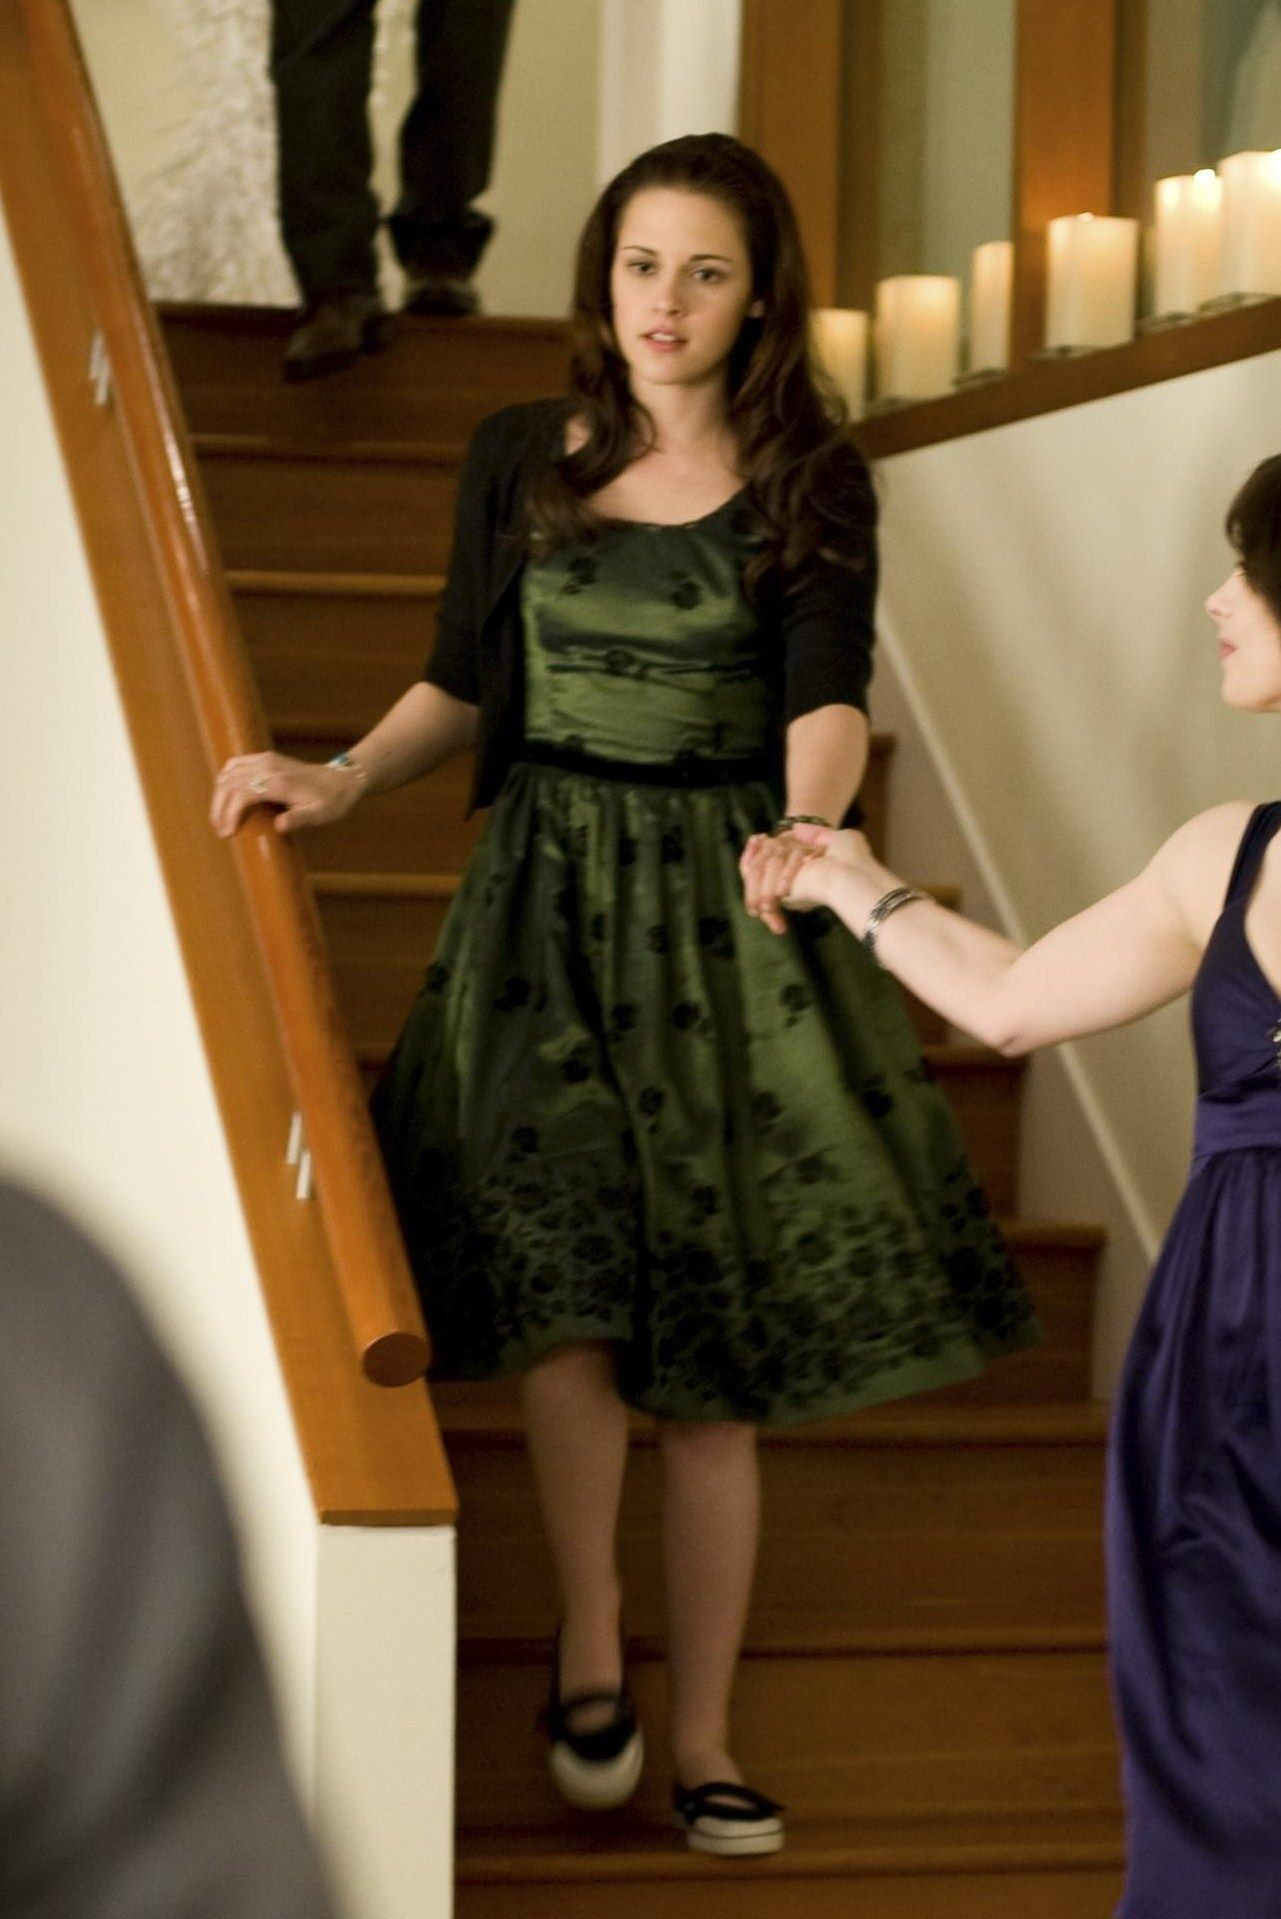 The Costumer S Guide To Movie Costumes Twilight Outfits Prom Dress Shoes Prom Outfits [ 2236 x 1676 Pixel ]